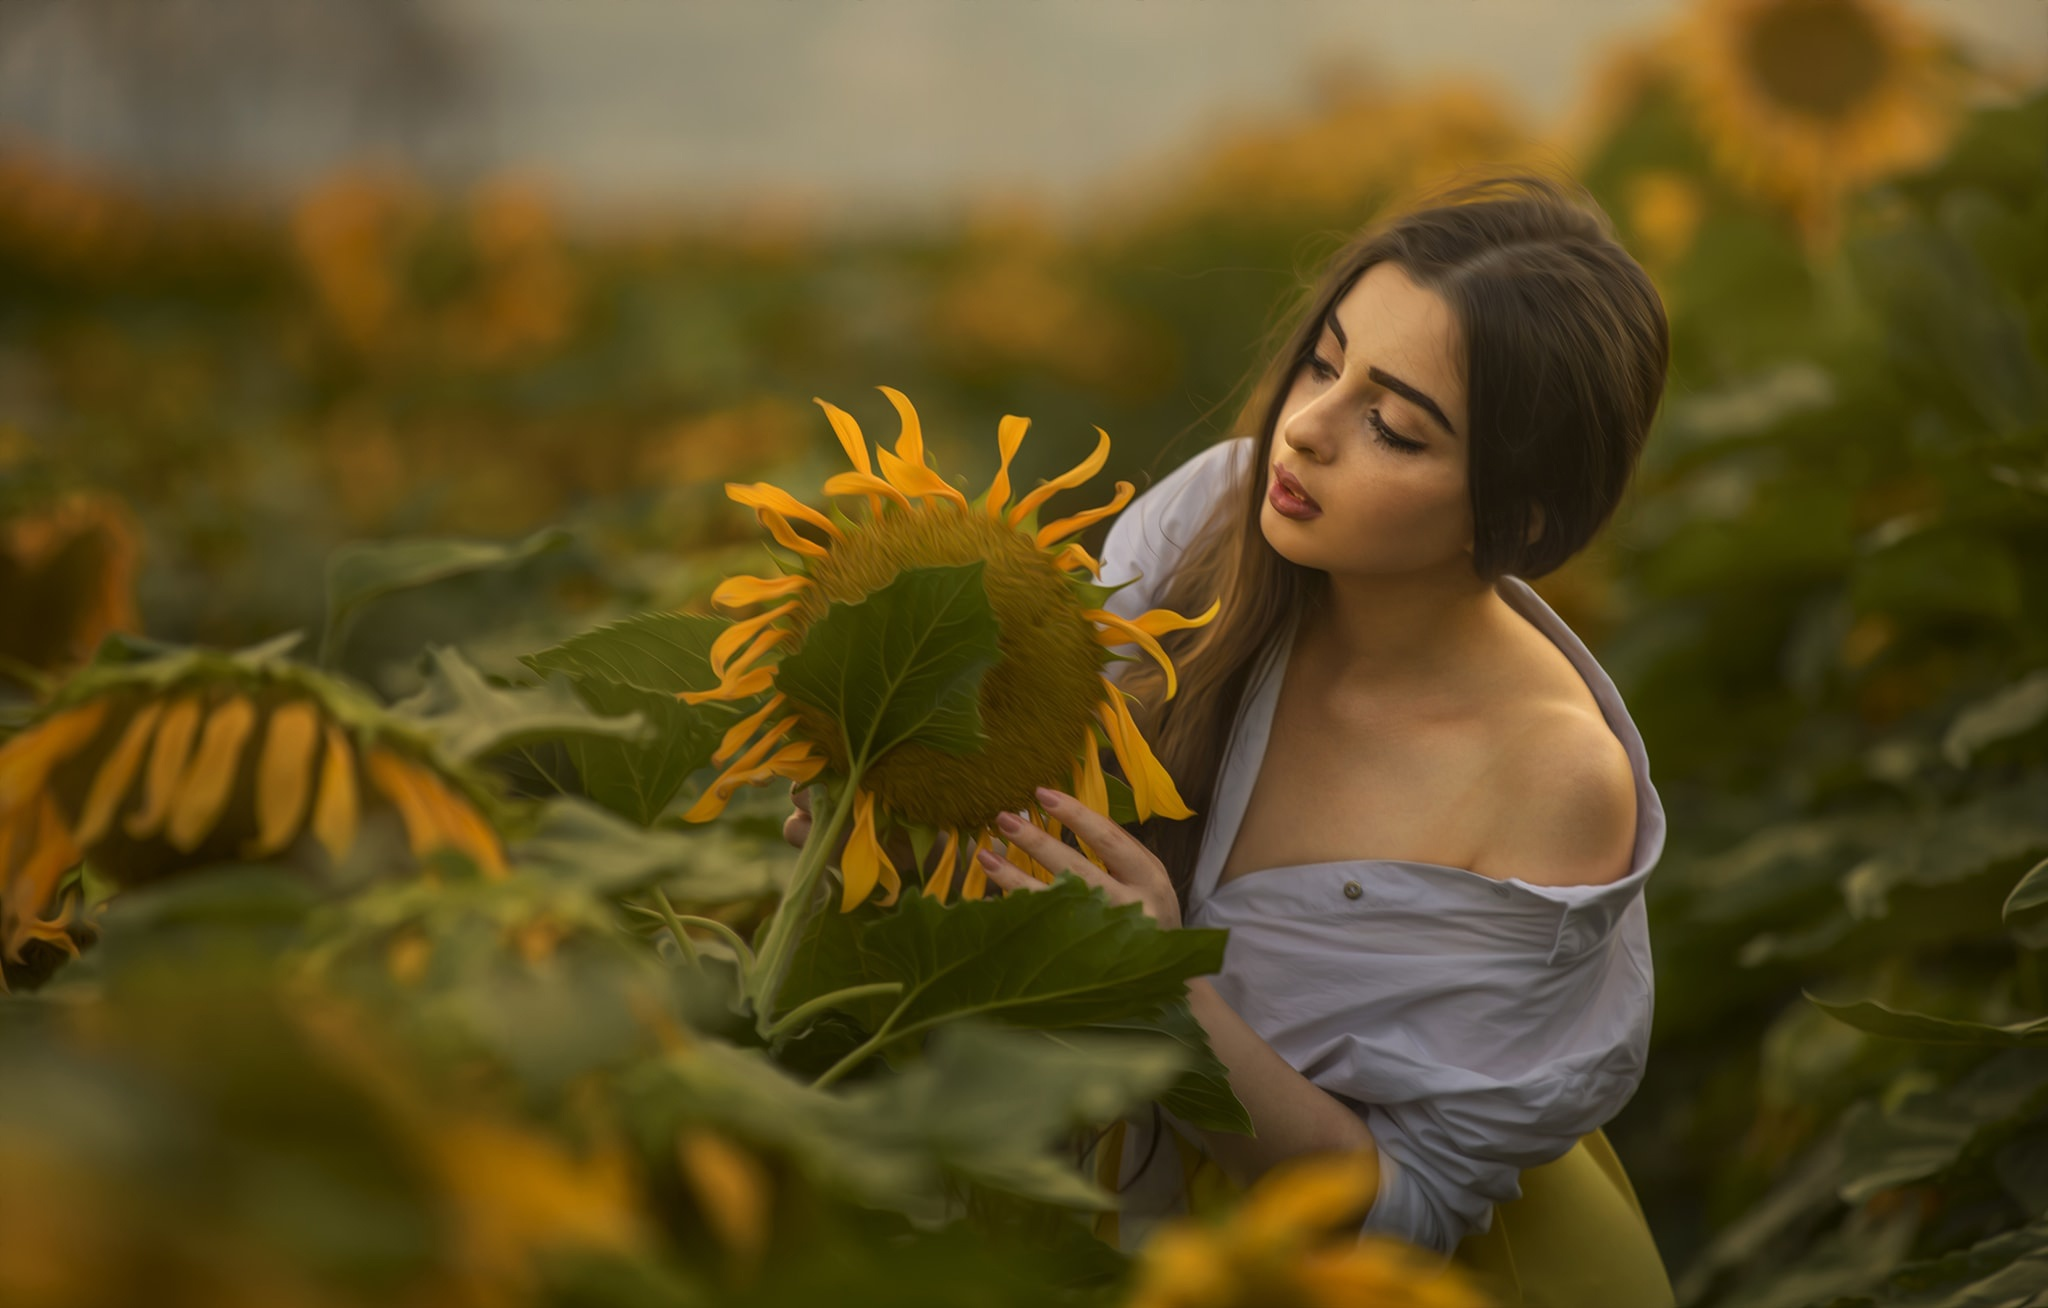 People 2048x1308 sunflowers portrait women flowers plants women outdoors